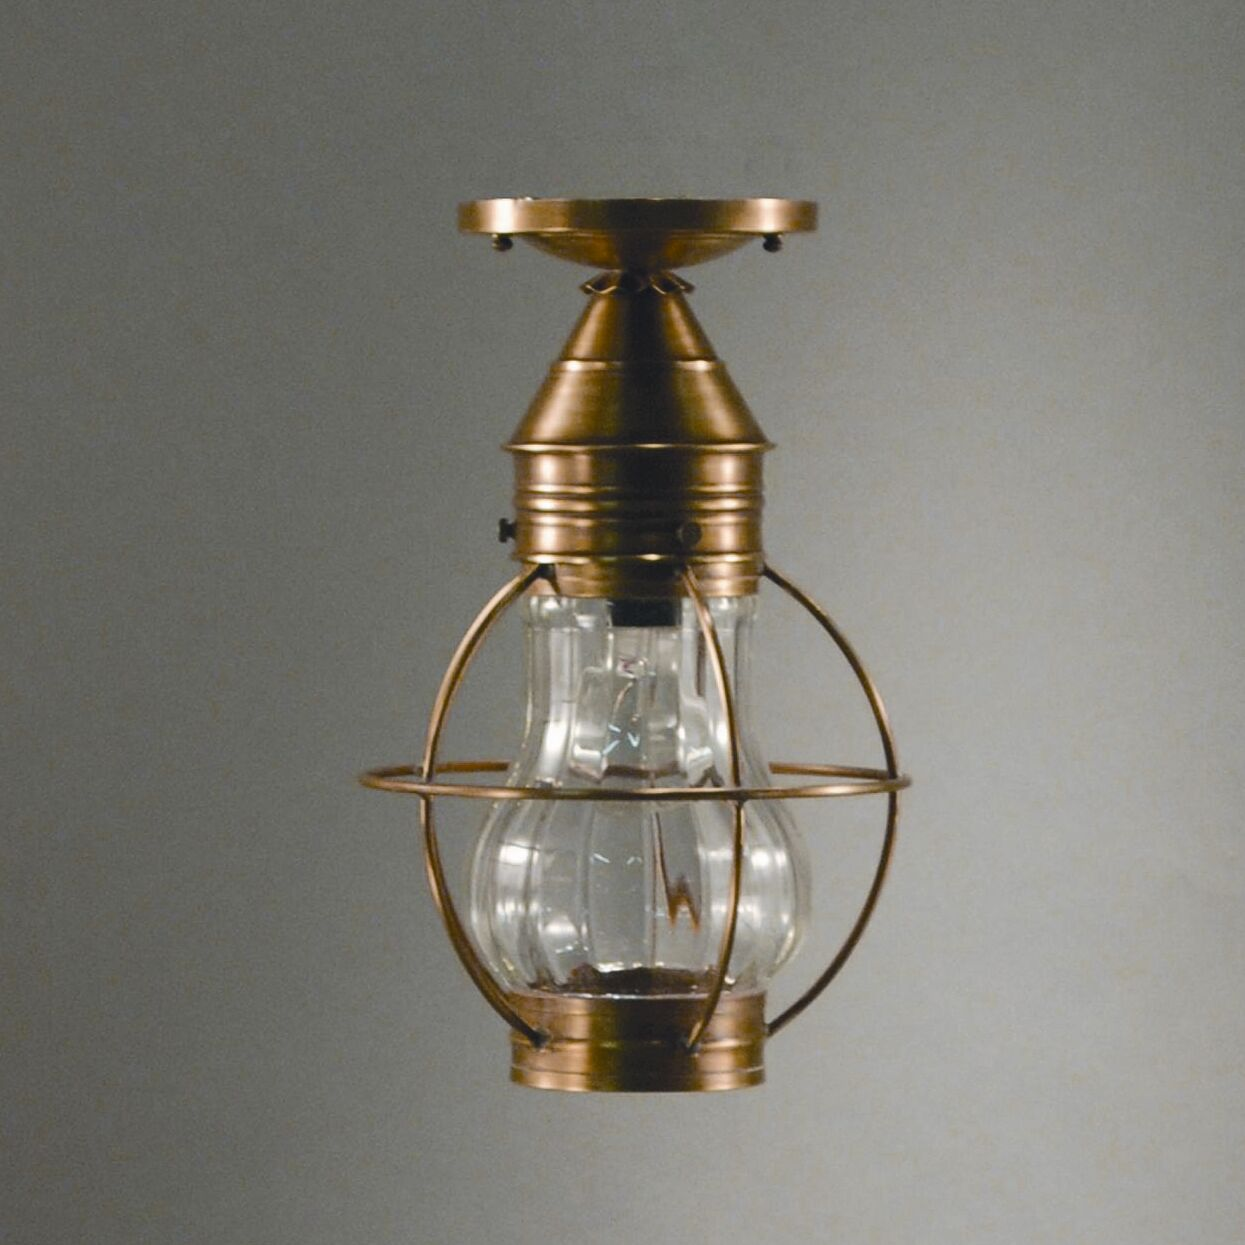 Onion Socket Caged Pear Semi Flush Mount Finish: Dark Antique Brass, Shade Color: Clear Seedy